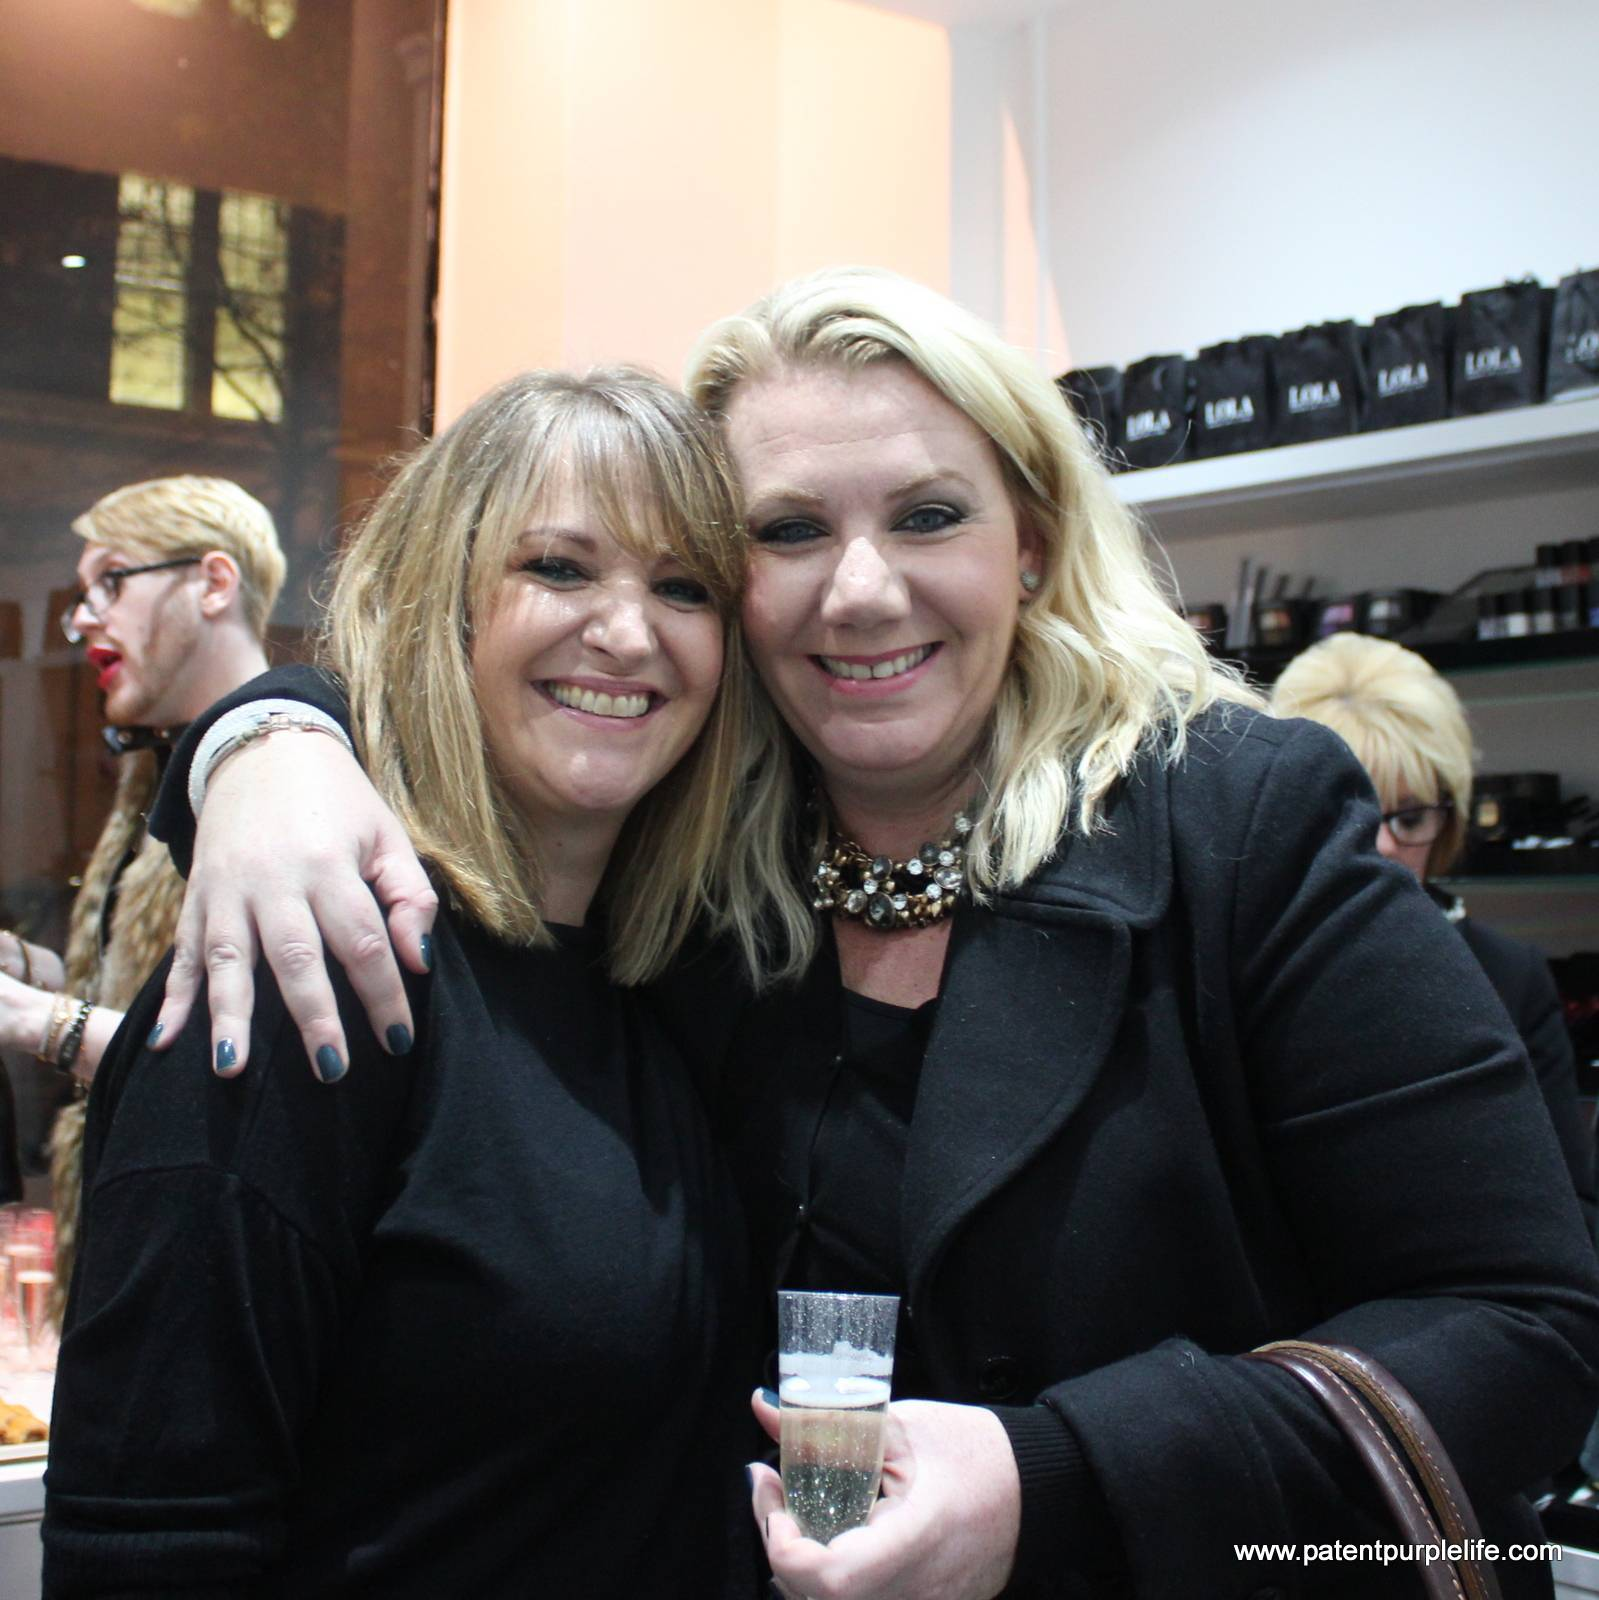 Louise Conner and Nina Westbury at Lola Makeup Boutique in Kings Cross